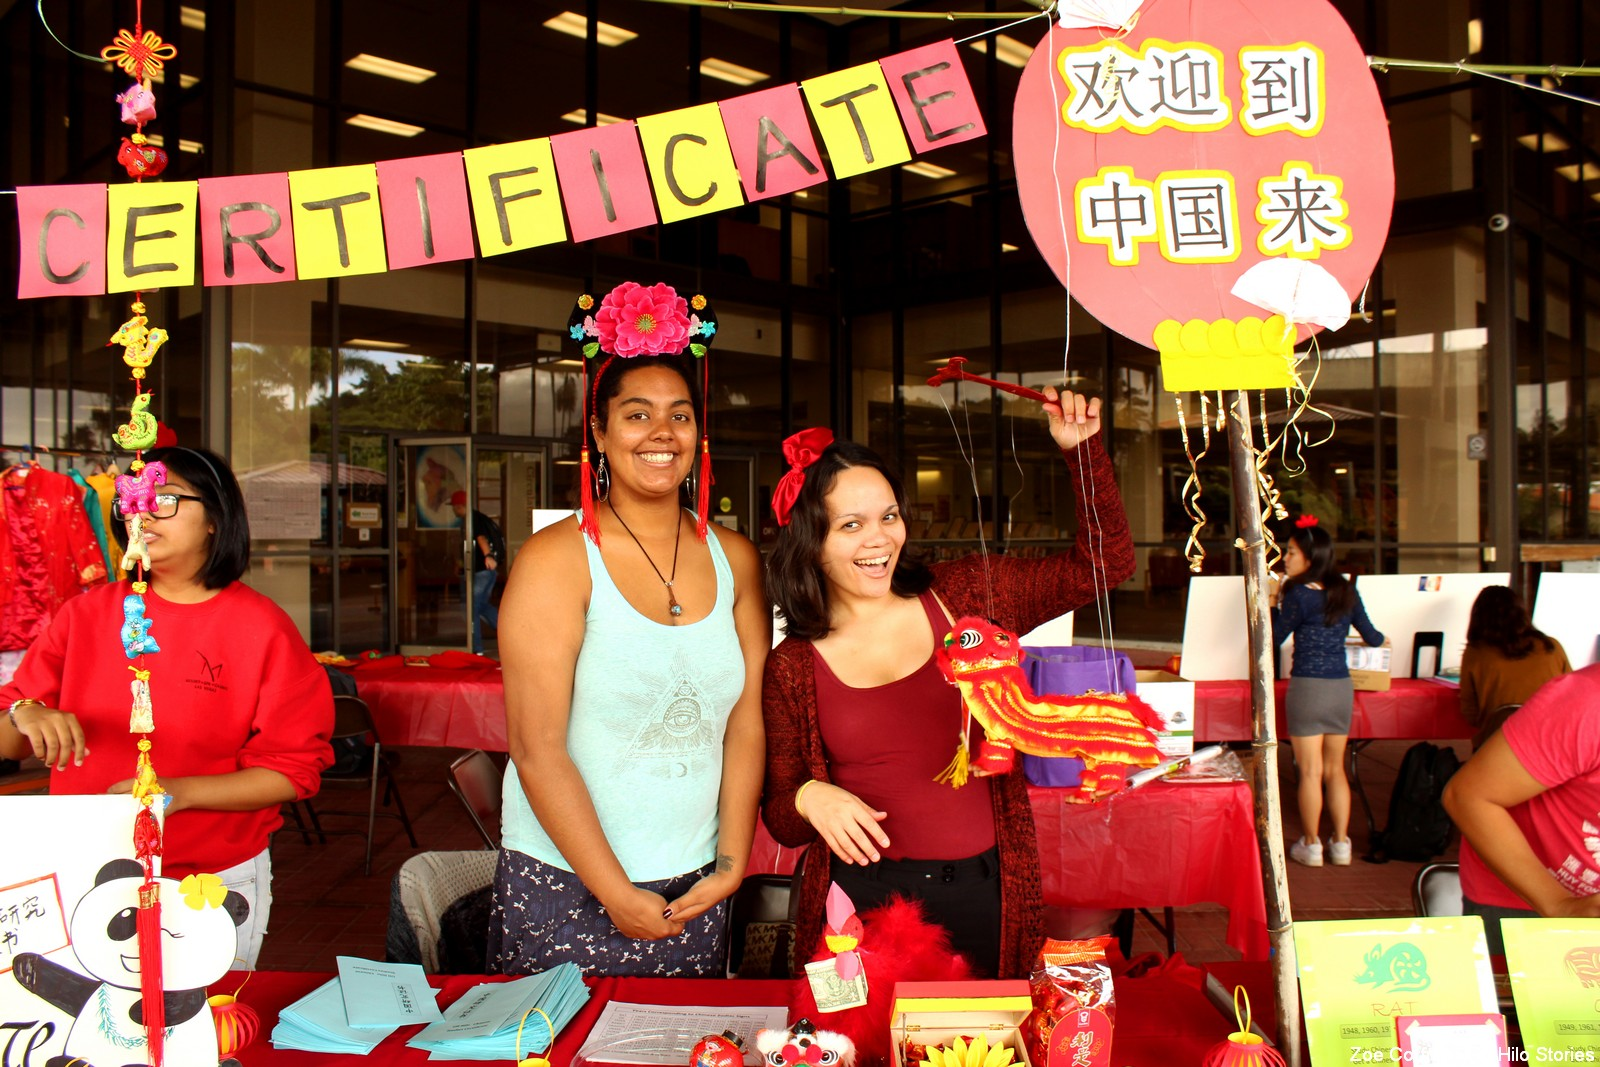 PHOTOS: UH Hilo students share culture, dance, art and more at Chinese Spring Festival